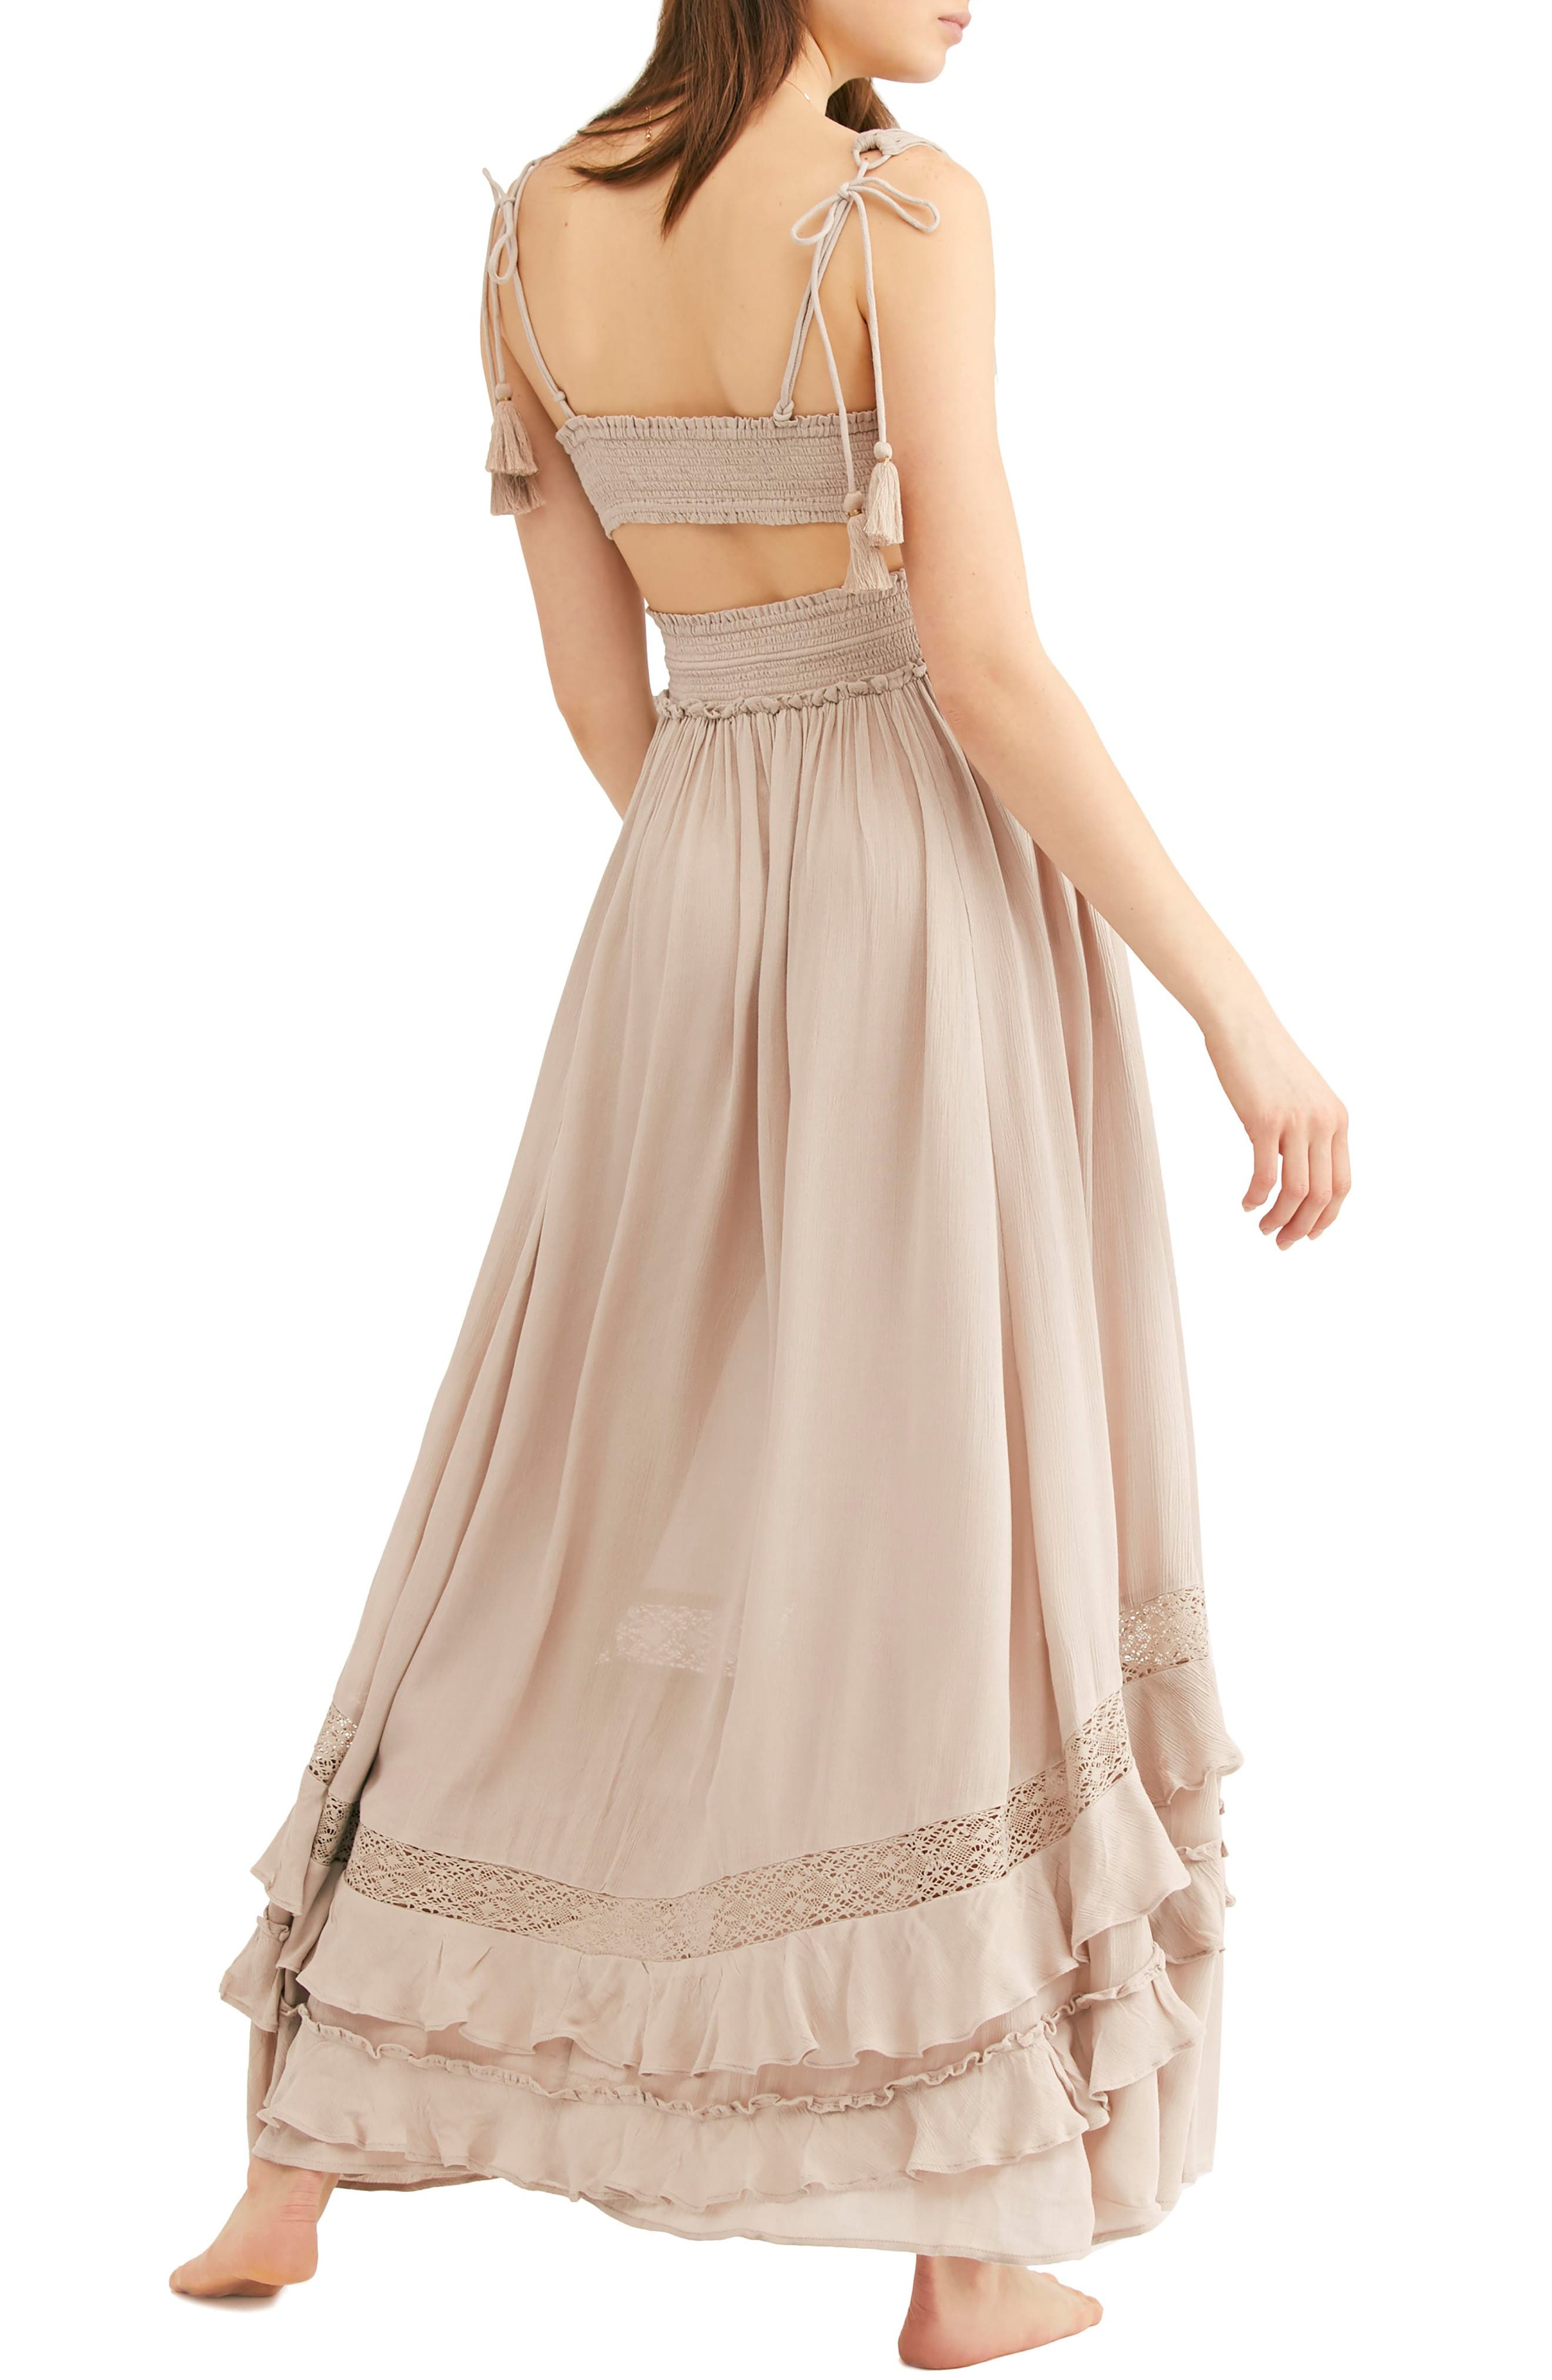 FREE PEOPLE,                             Endless Summer by Free People Santa Maria Maxi Dress,                             Alternate thumbnail 2, color,                             250